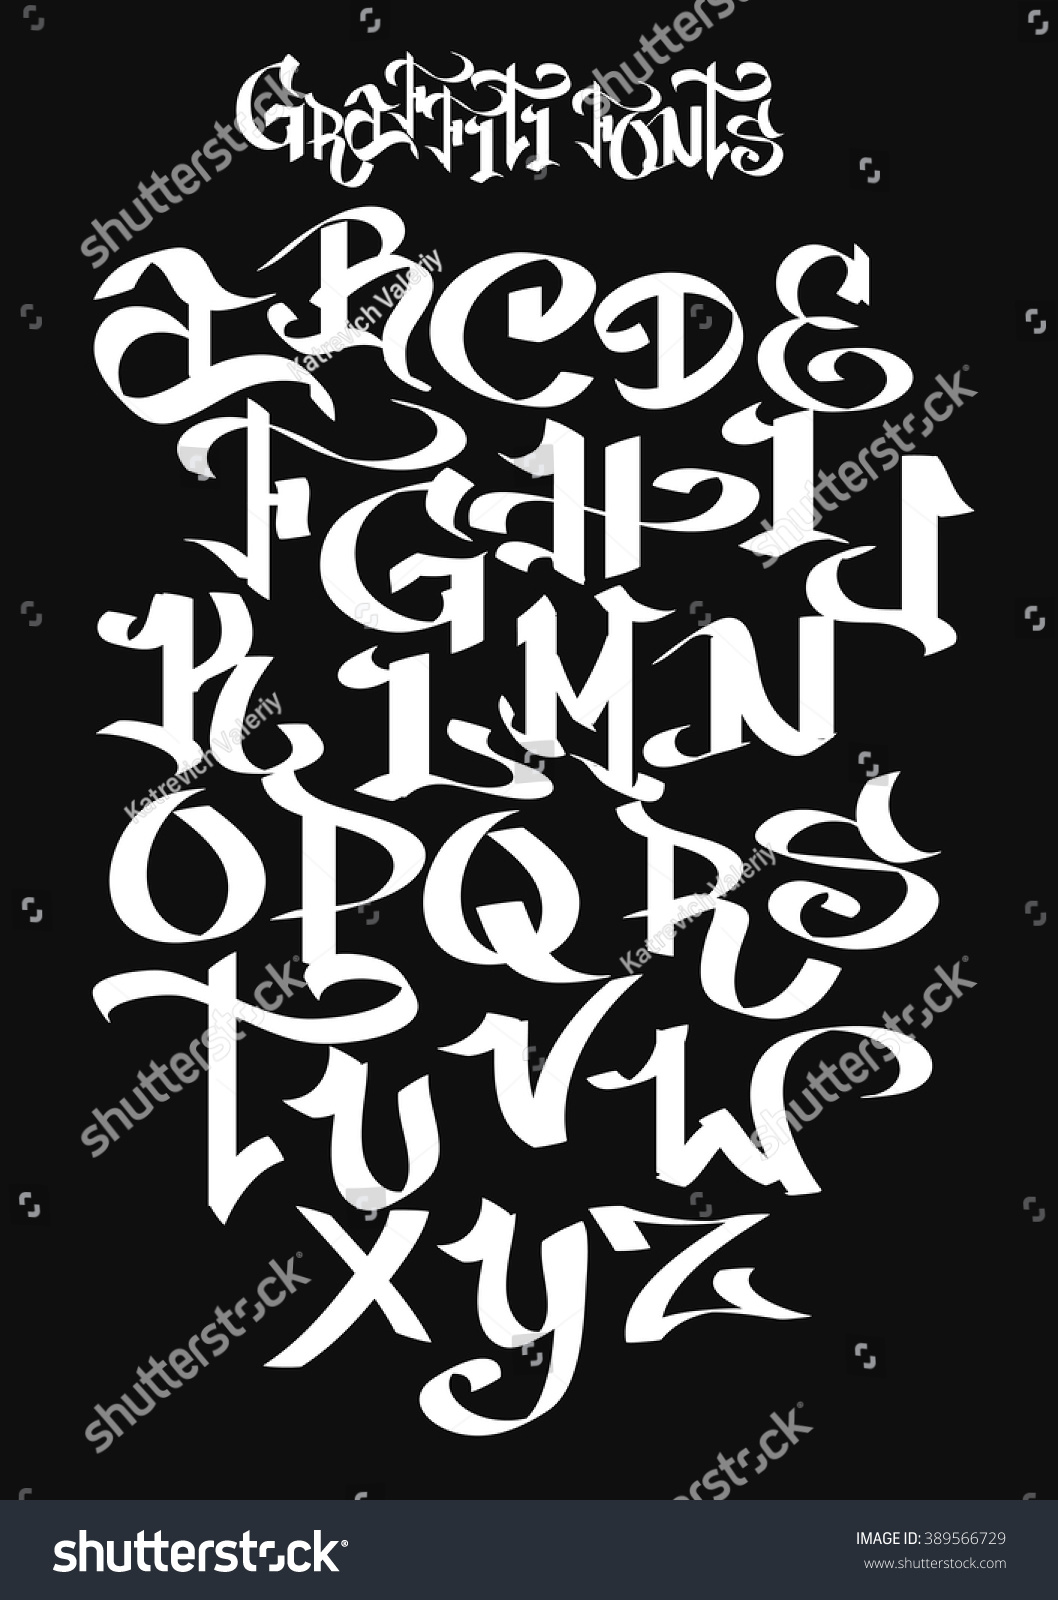 Graffiti Font Alphabet Vector Illustration 389566729